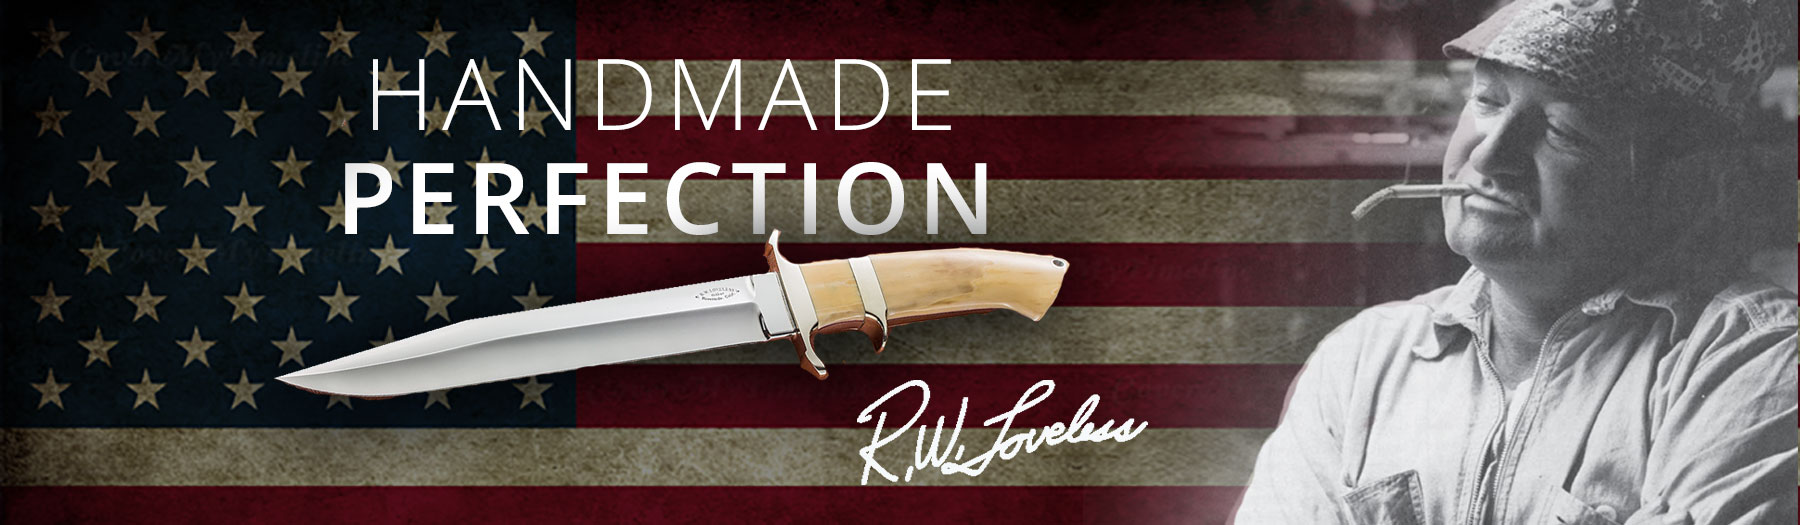 Bob Loveless Knife Dealers Handmade Perfection